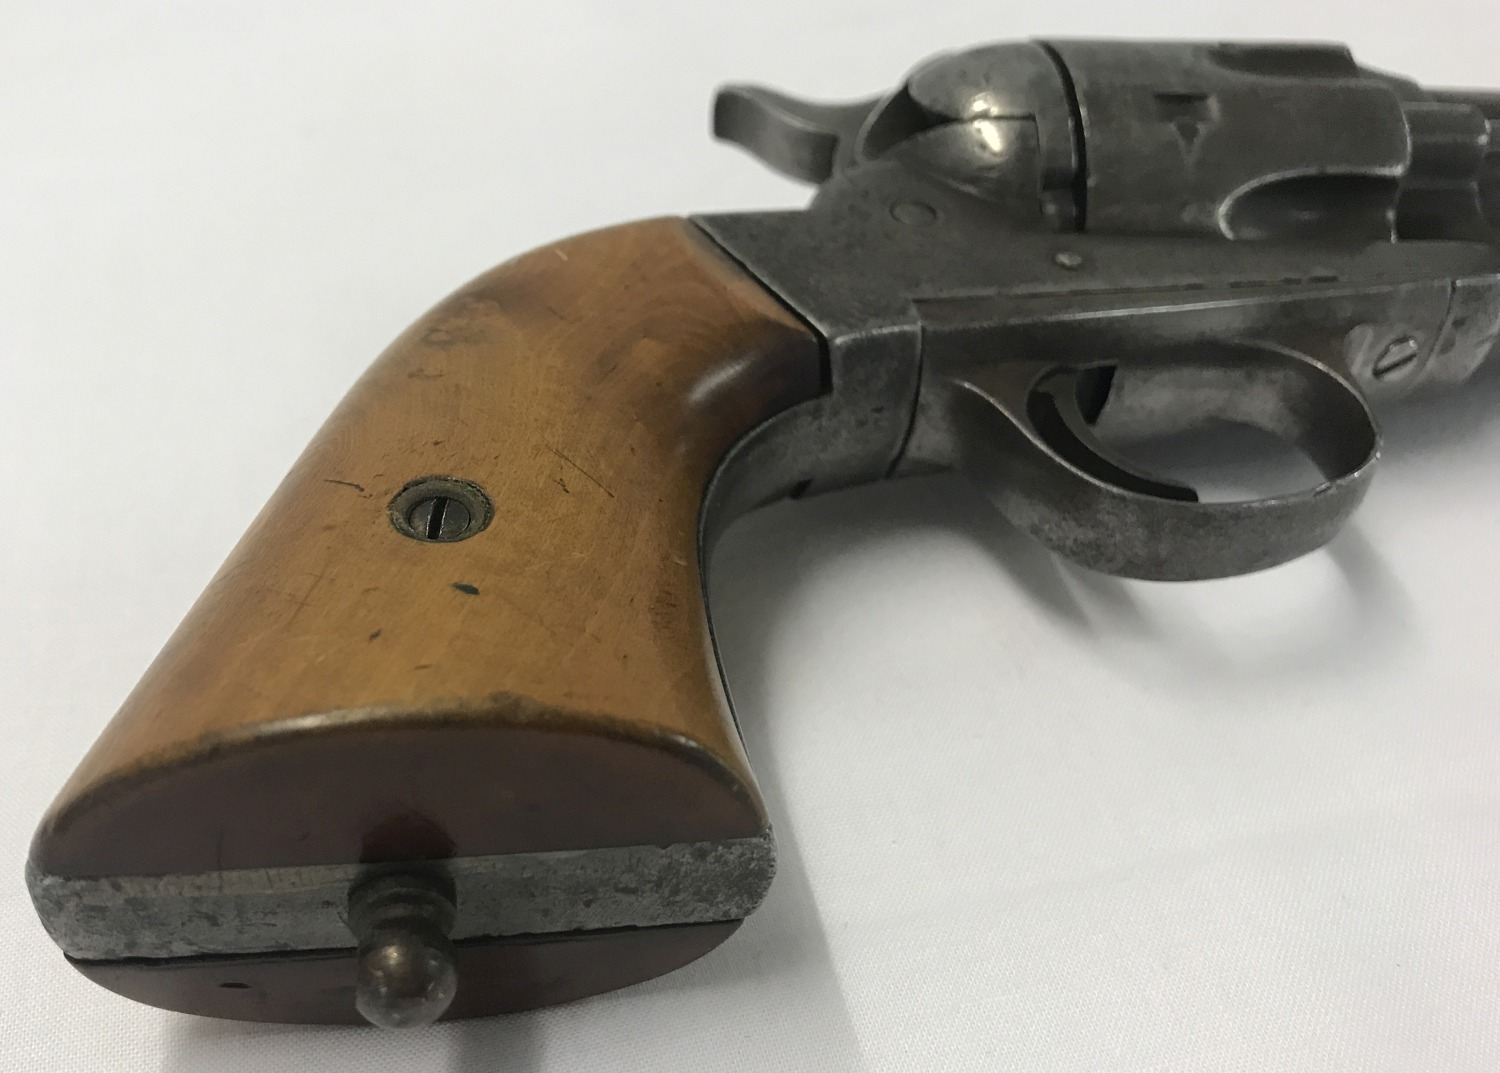 An antique Remington 1875 army revolver c 1876 - 1893. - Image 2 of 6